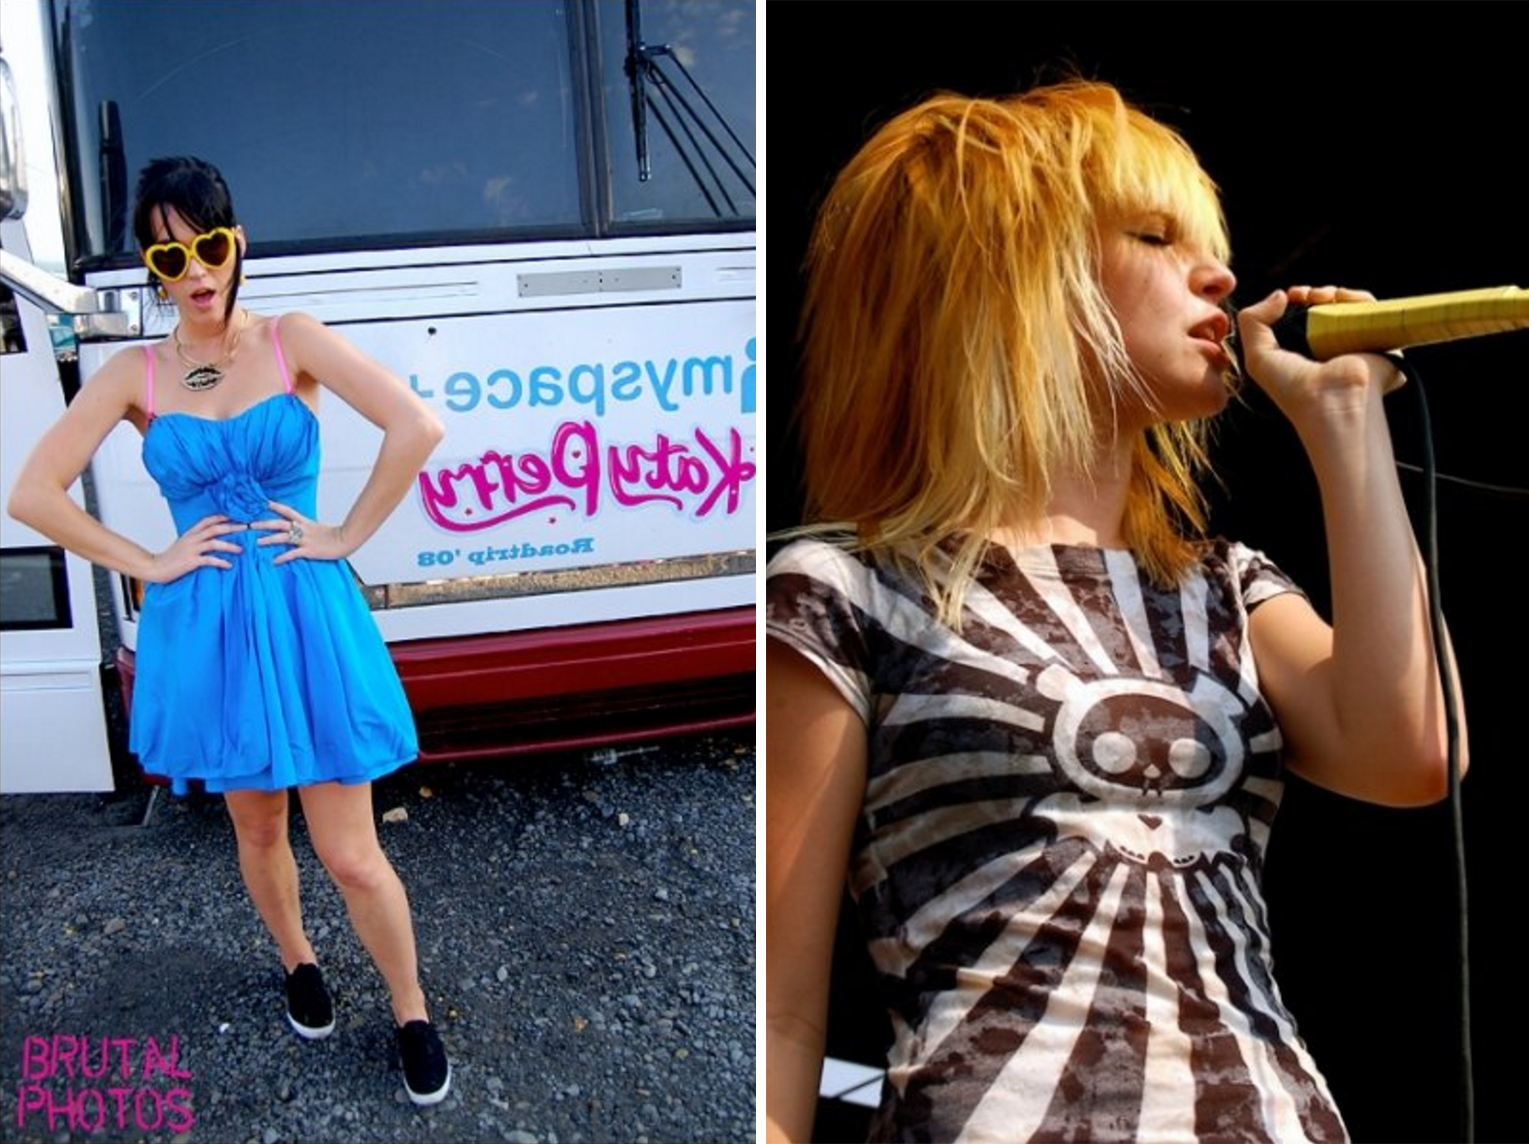 Left: Katy Perry, 2008. Right: Hayley Williams of Paramore, 2007.